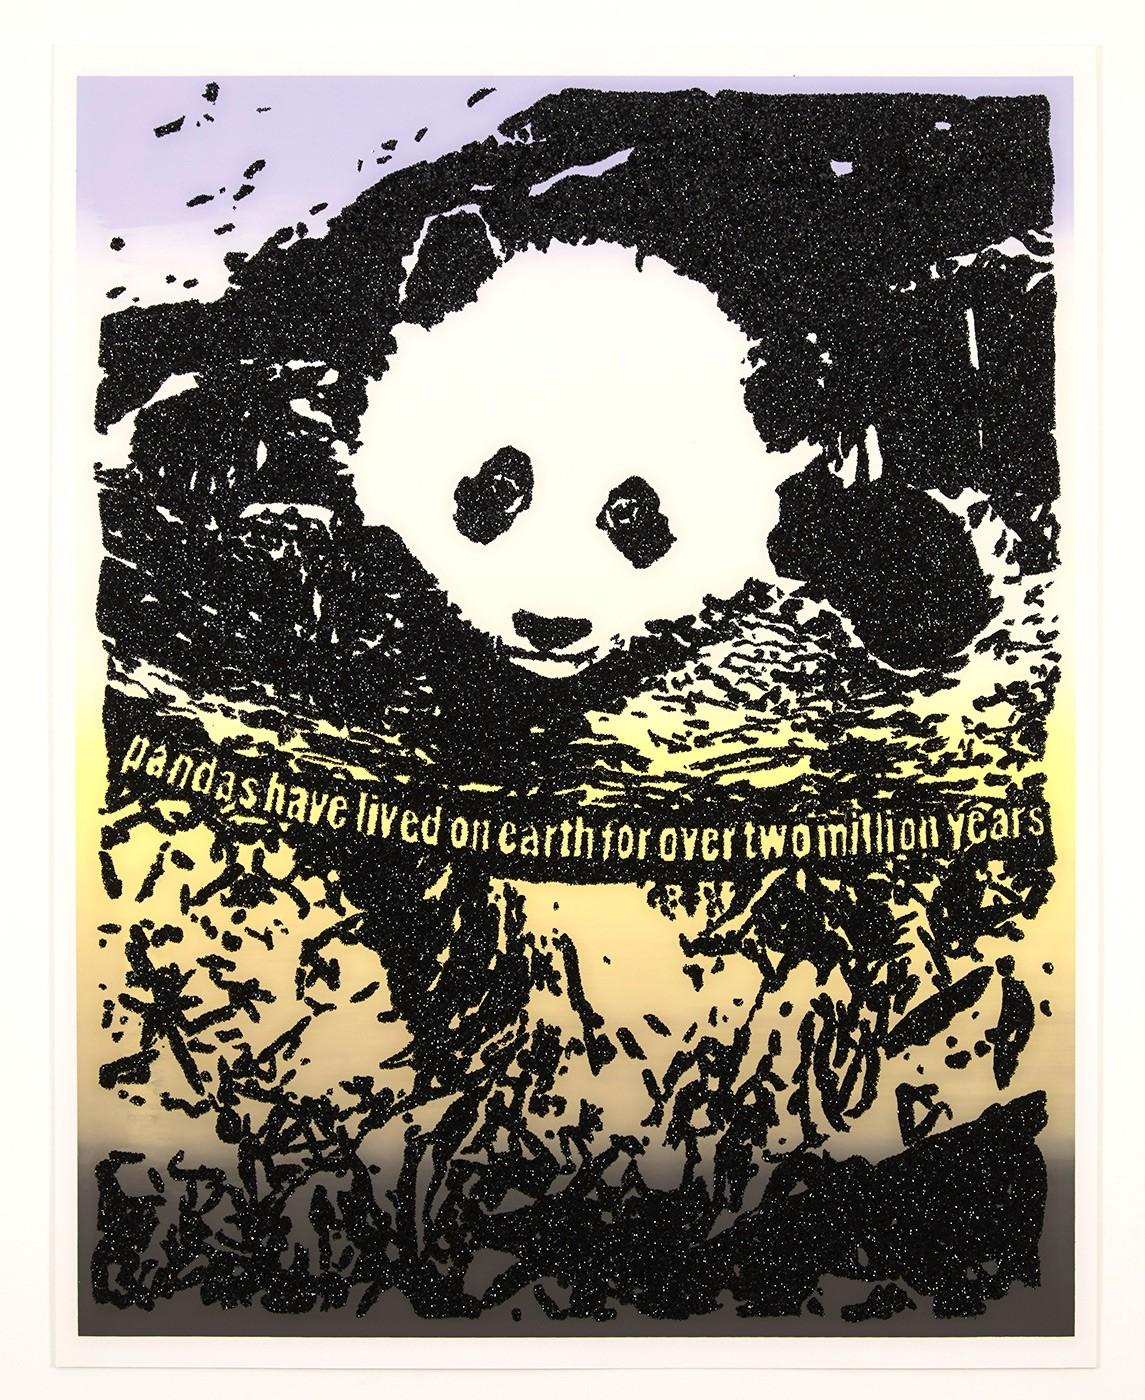 Giant Pandas Spend About 12 Hours a Day Eating Up to 15 Kilograms of Bamboo.